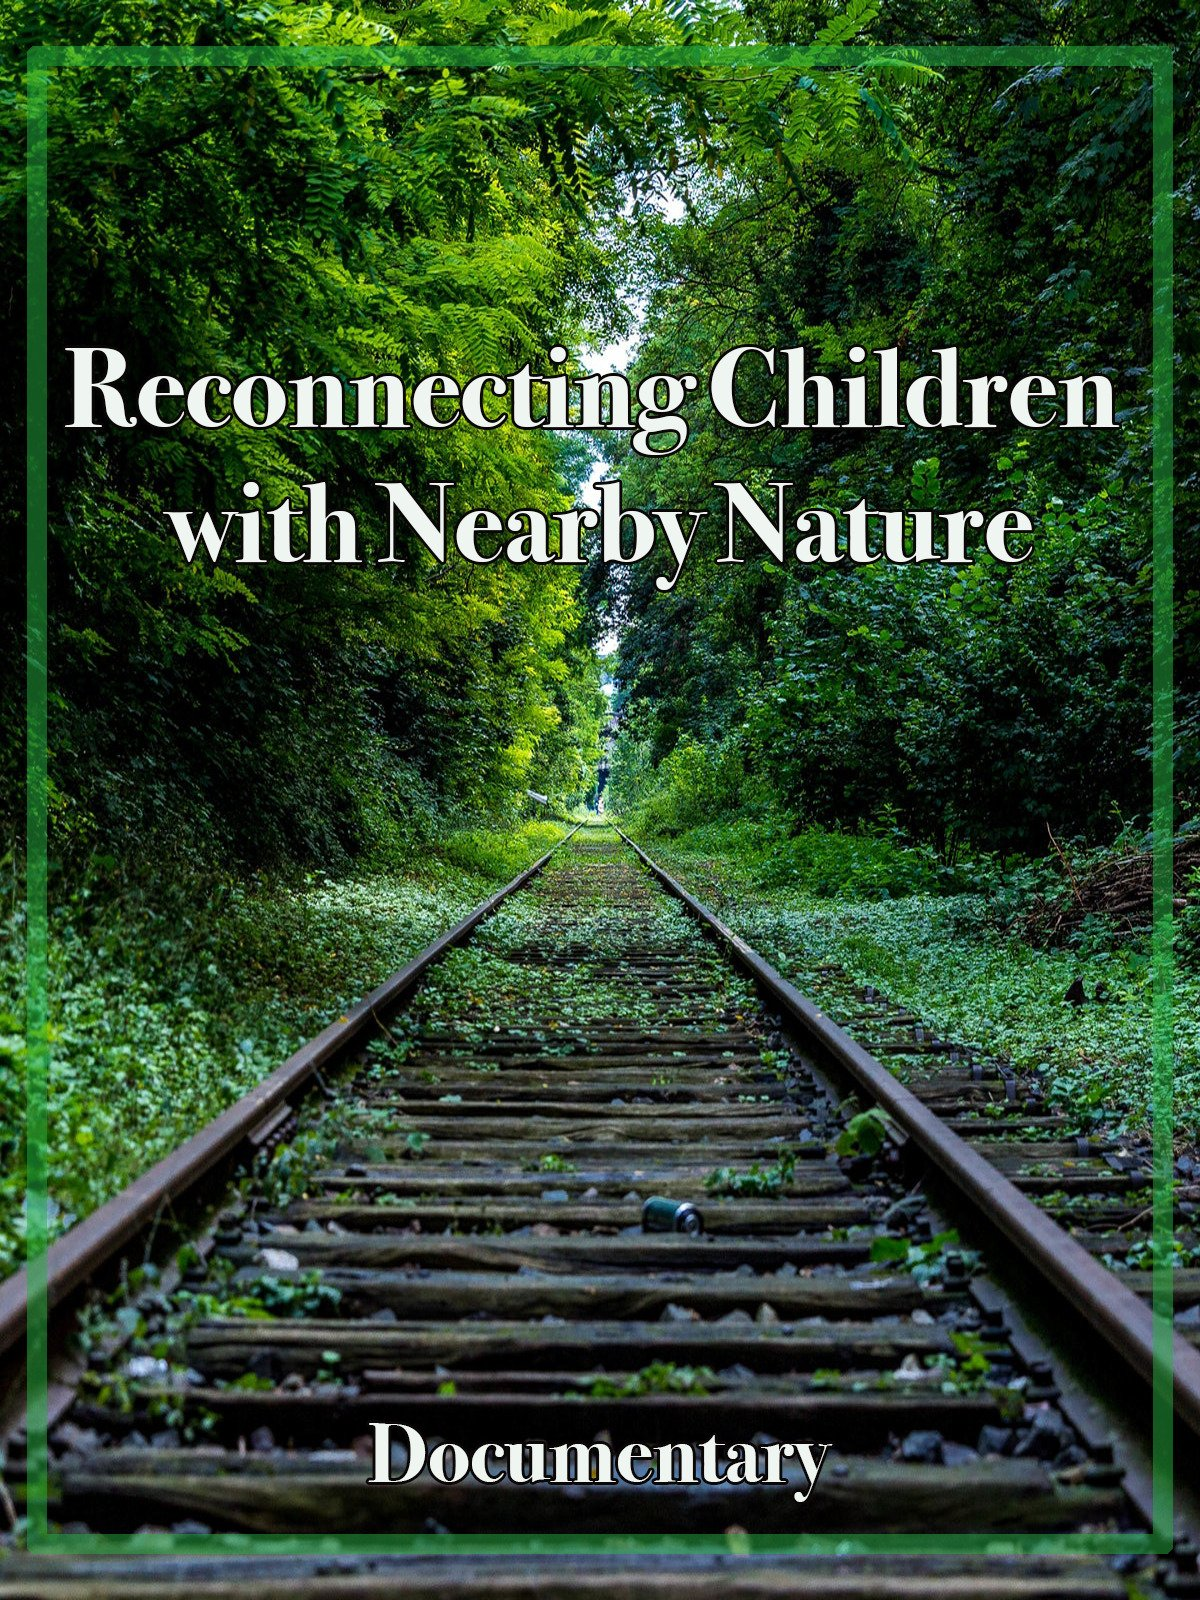 Reconnecting Children with Nearby Nature